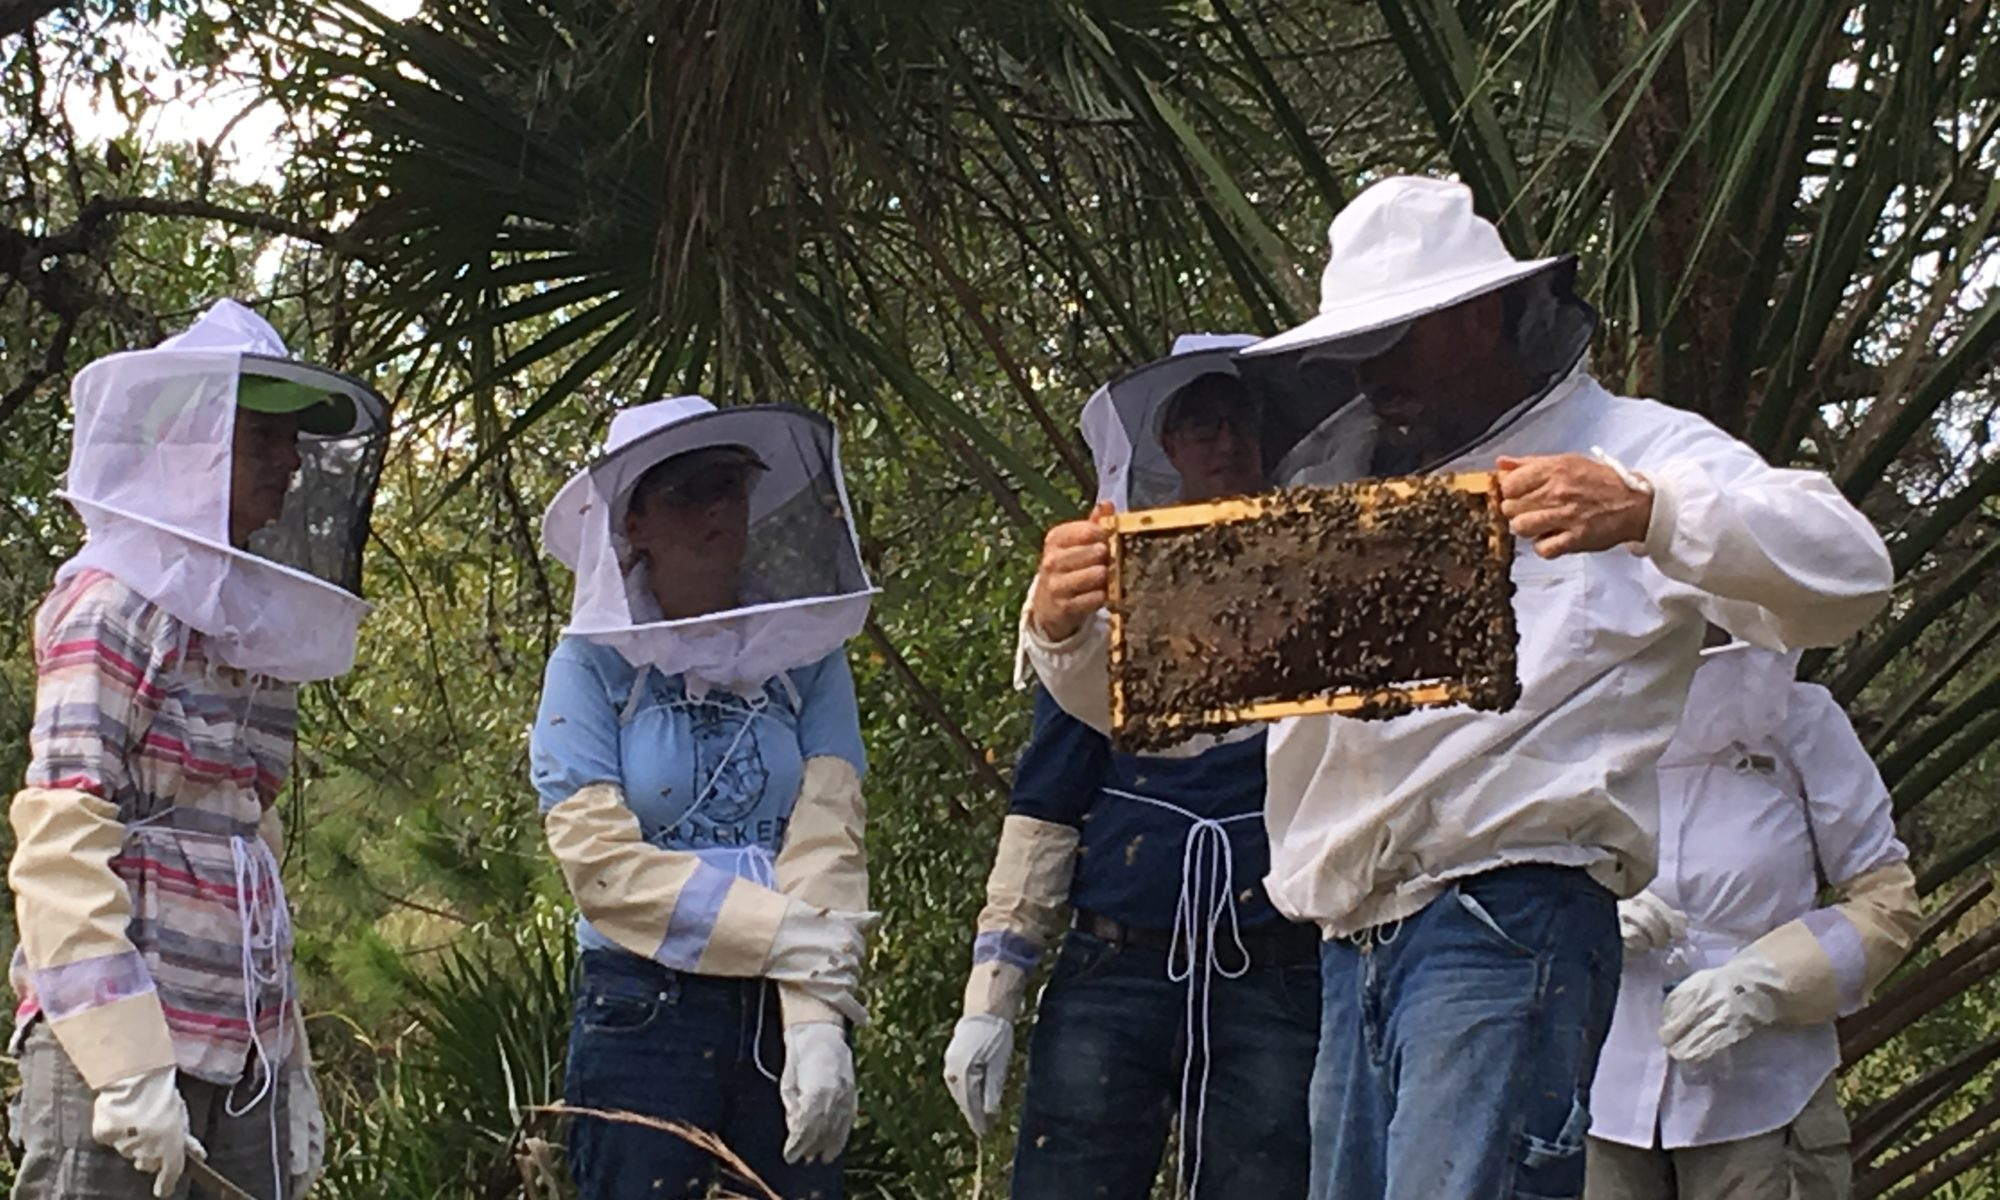 Hive inspections at Bee 101 Hands on Workshop | Lee Honey Bee